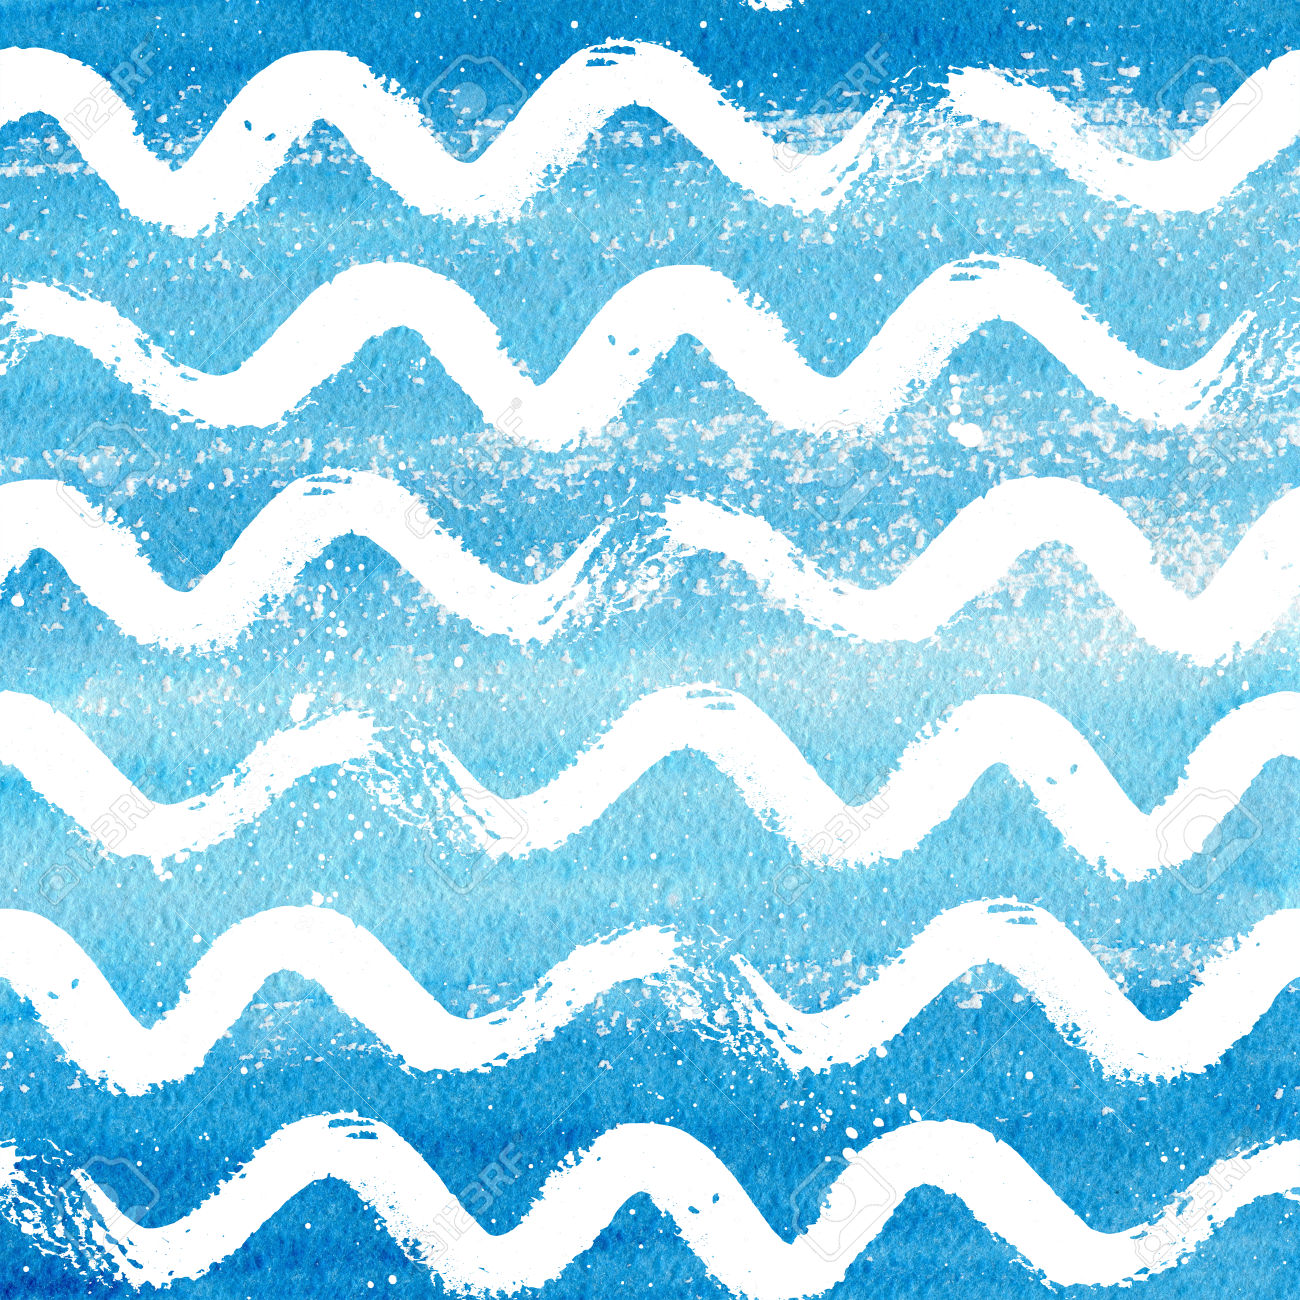 60342718-Watercolor-blue-beach-background-with-white-ink-hand-drawn-waves-Raster-striped-geometric-summer-des-Stock-Photo.jpg